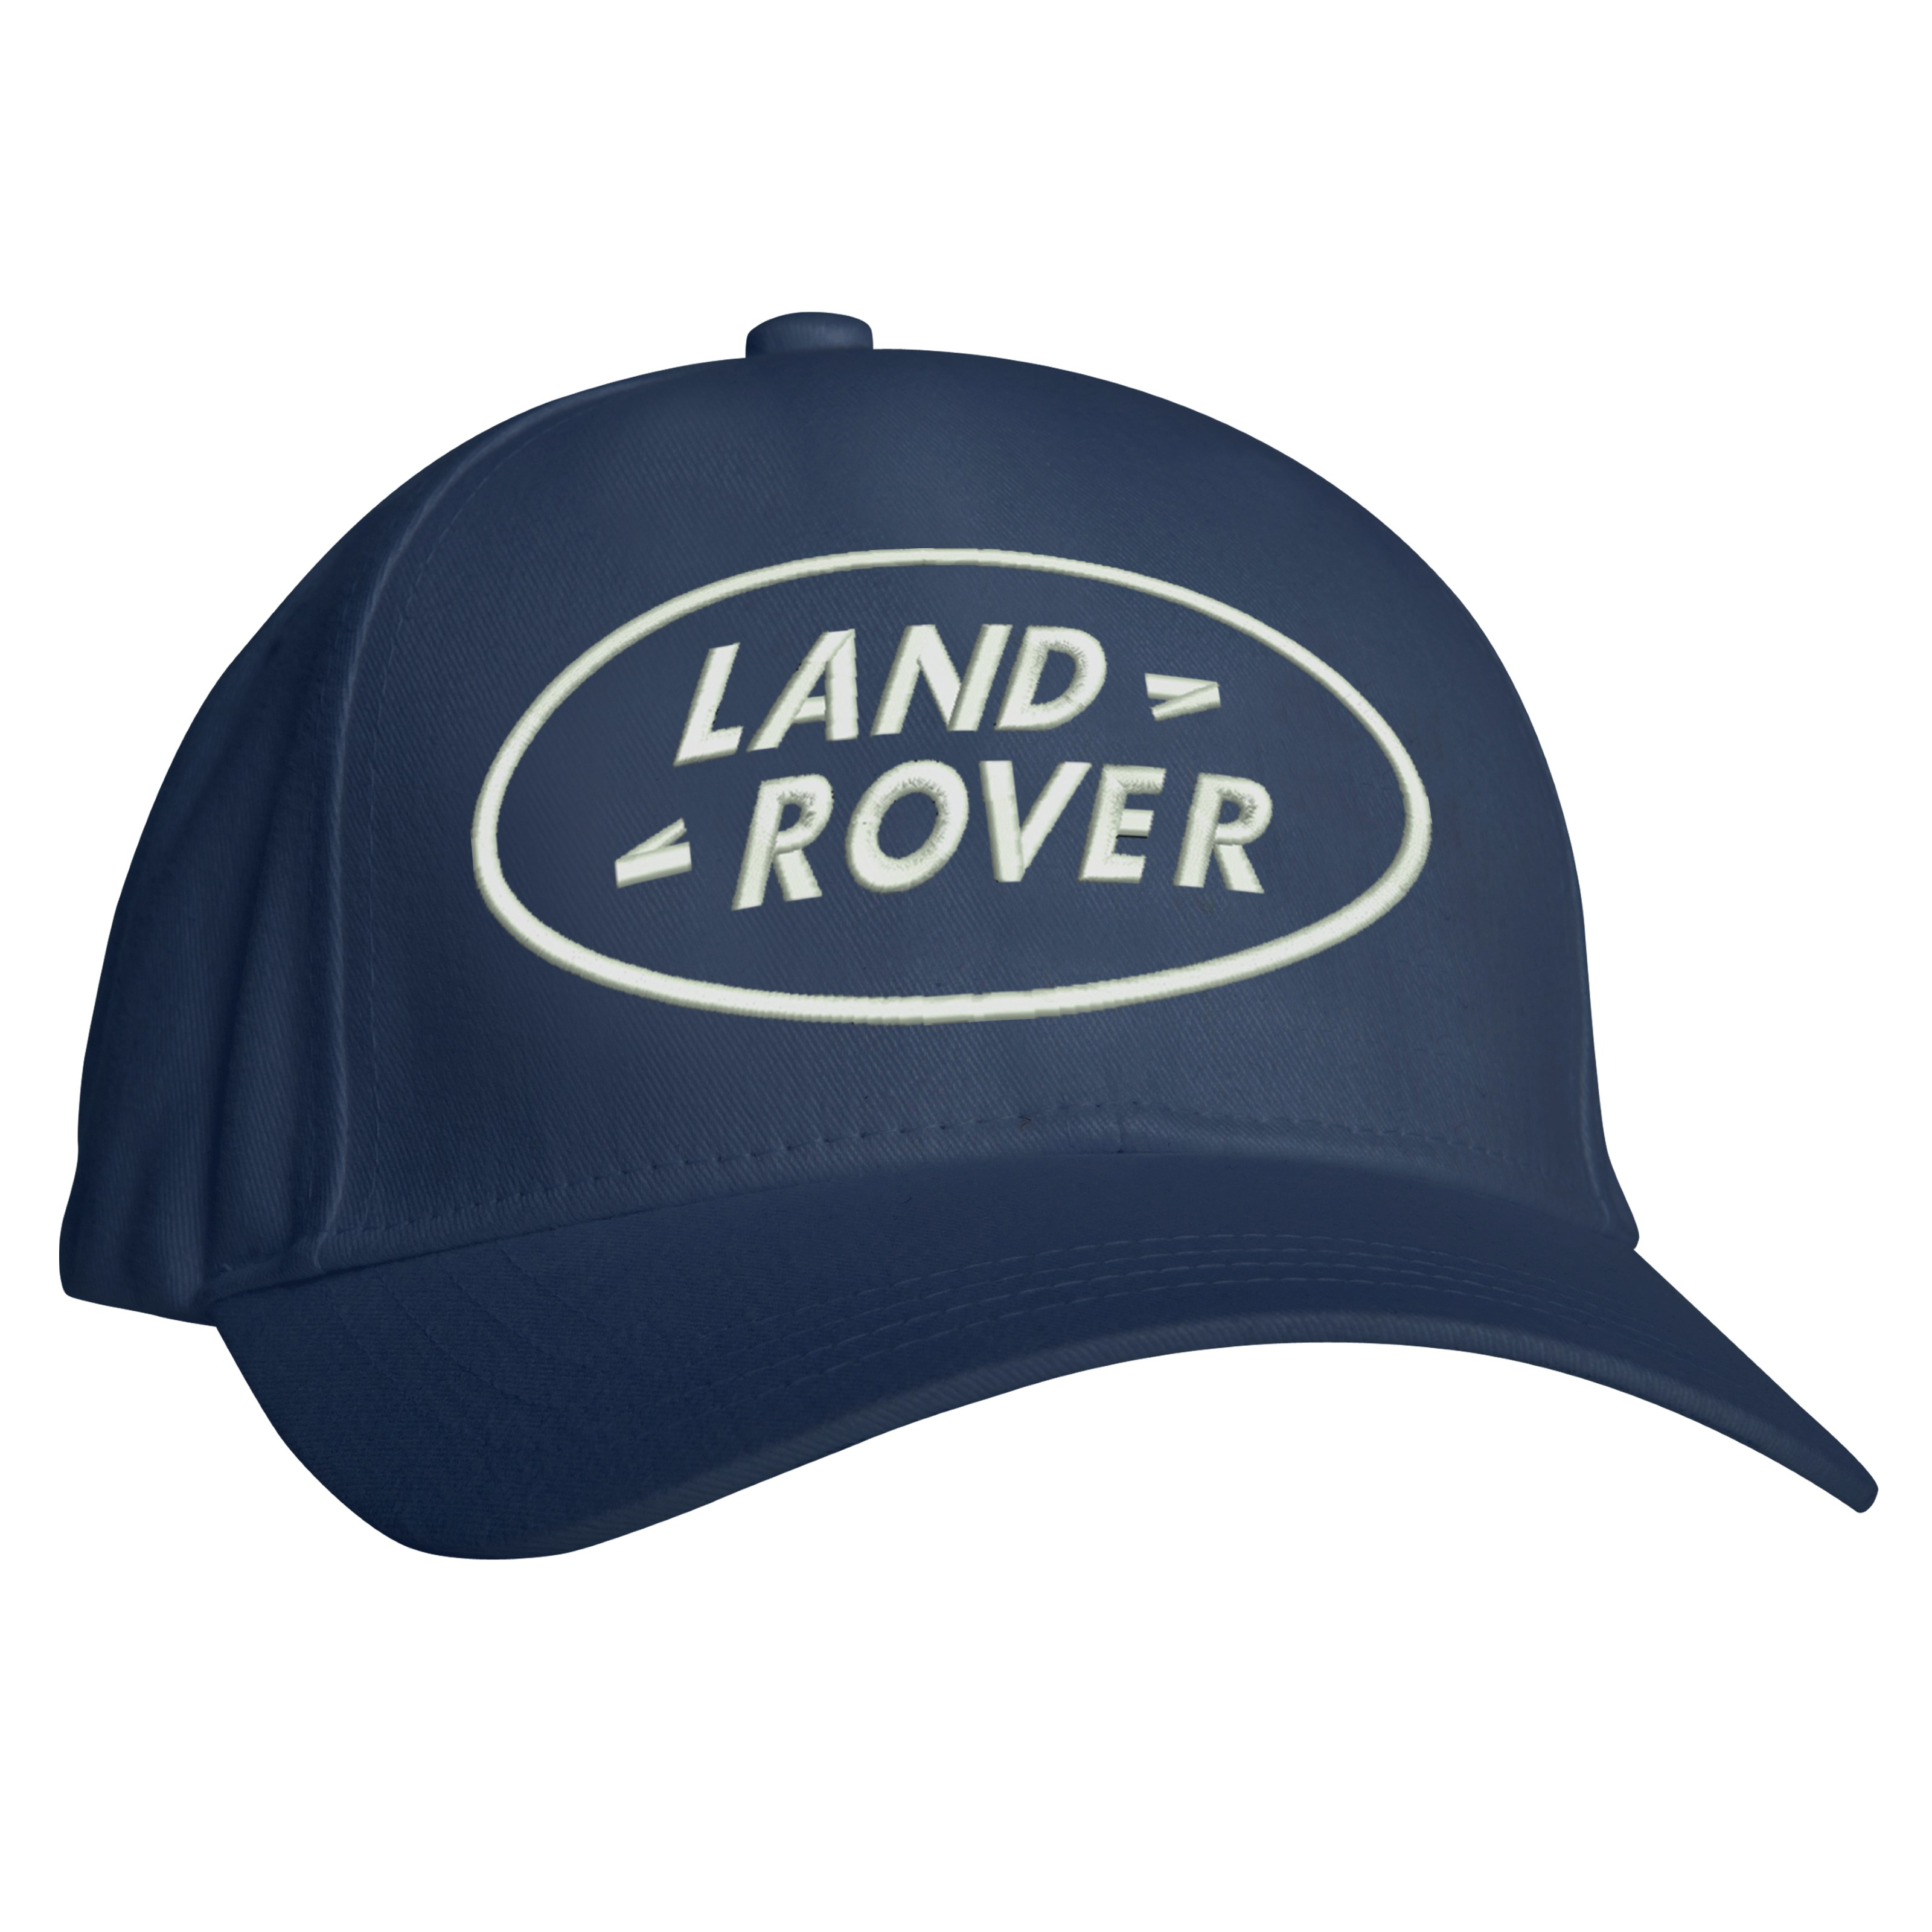 parts cornwall used rover new car home merchandise land saltash landrover dealerships roger